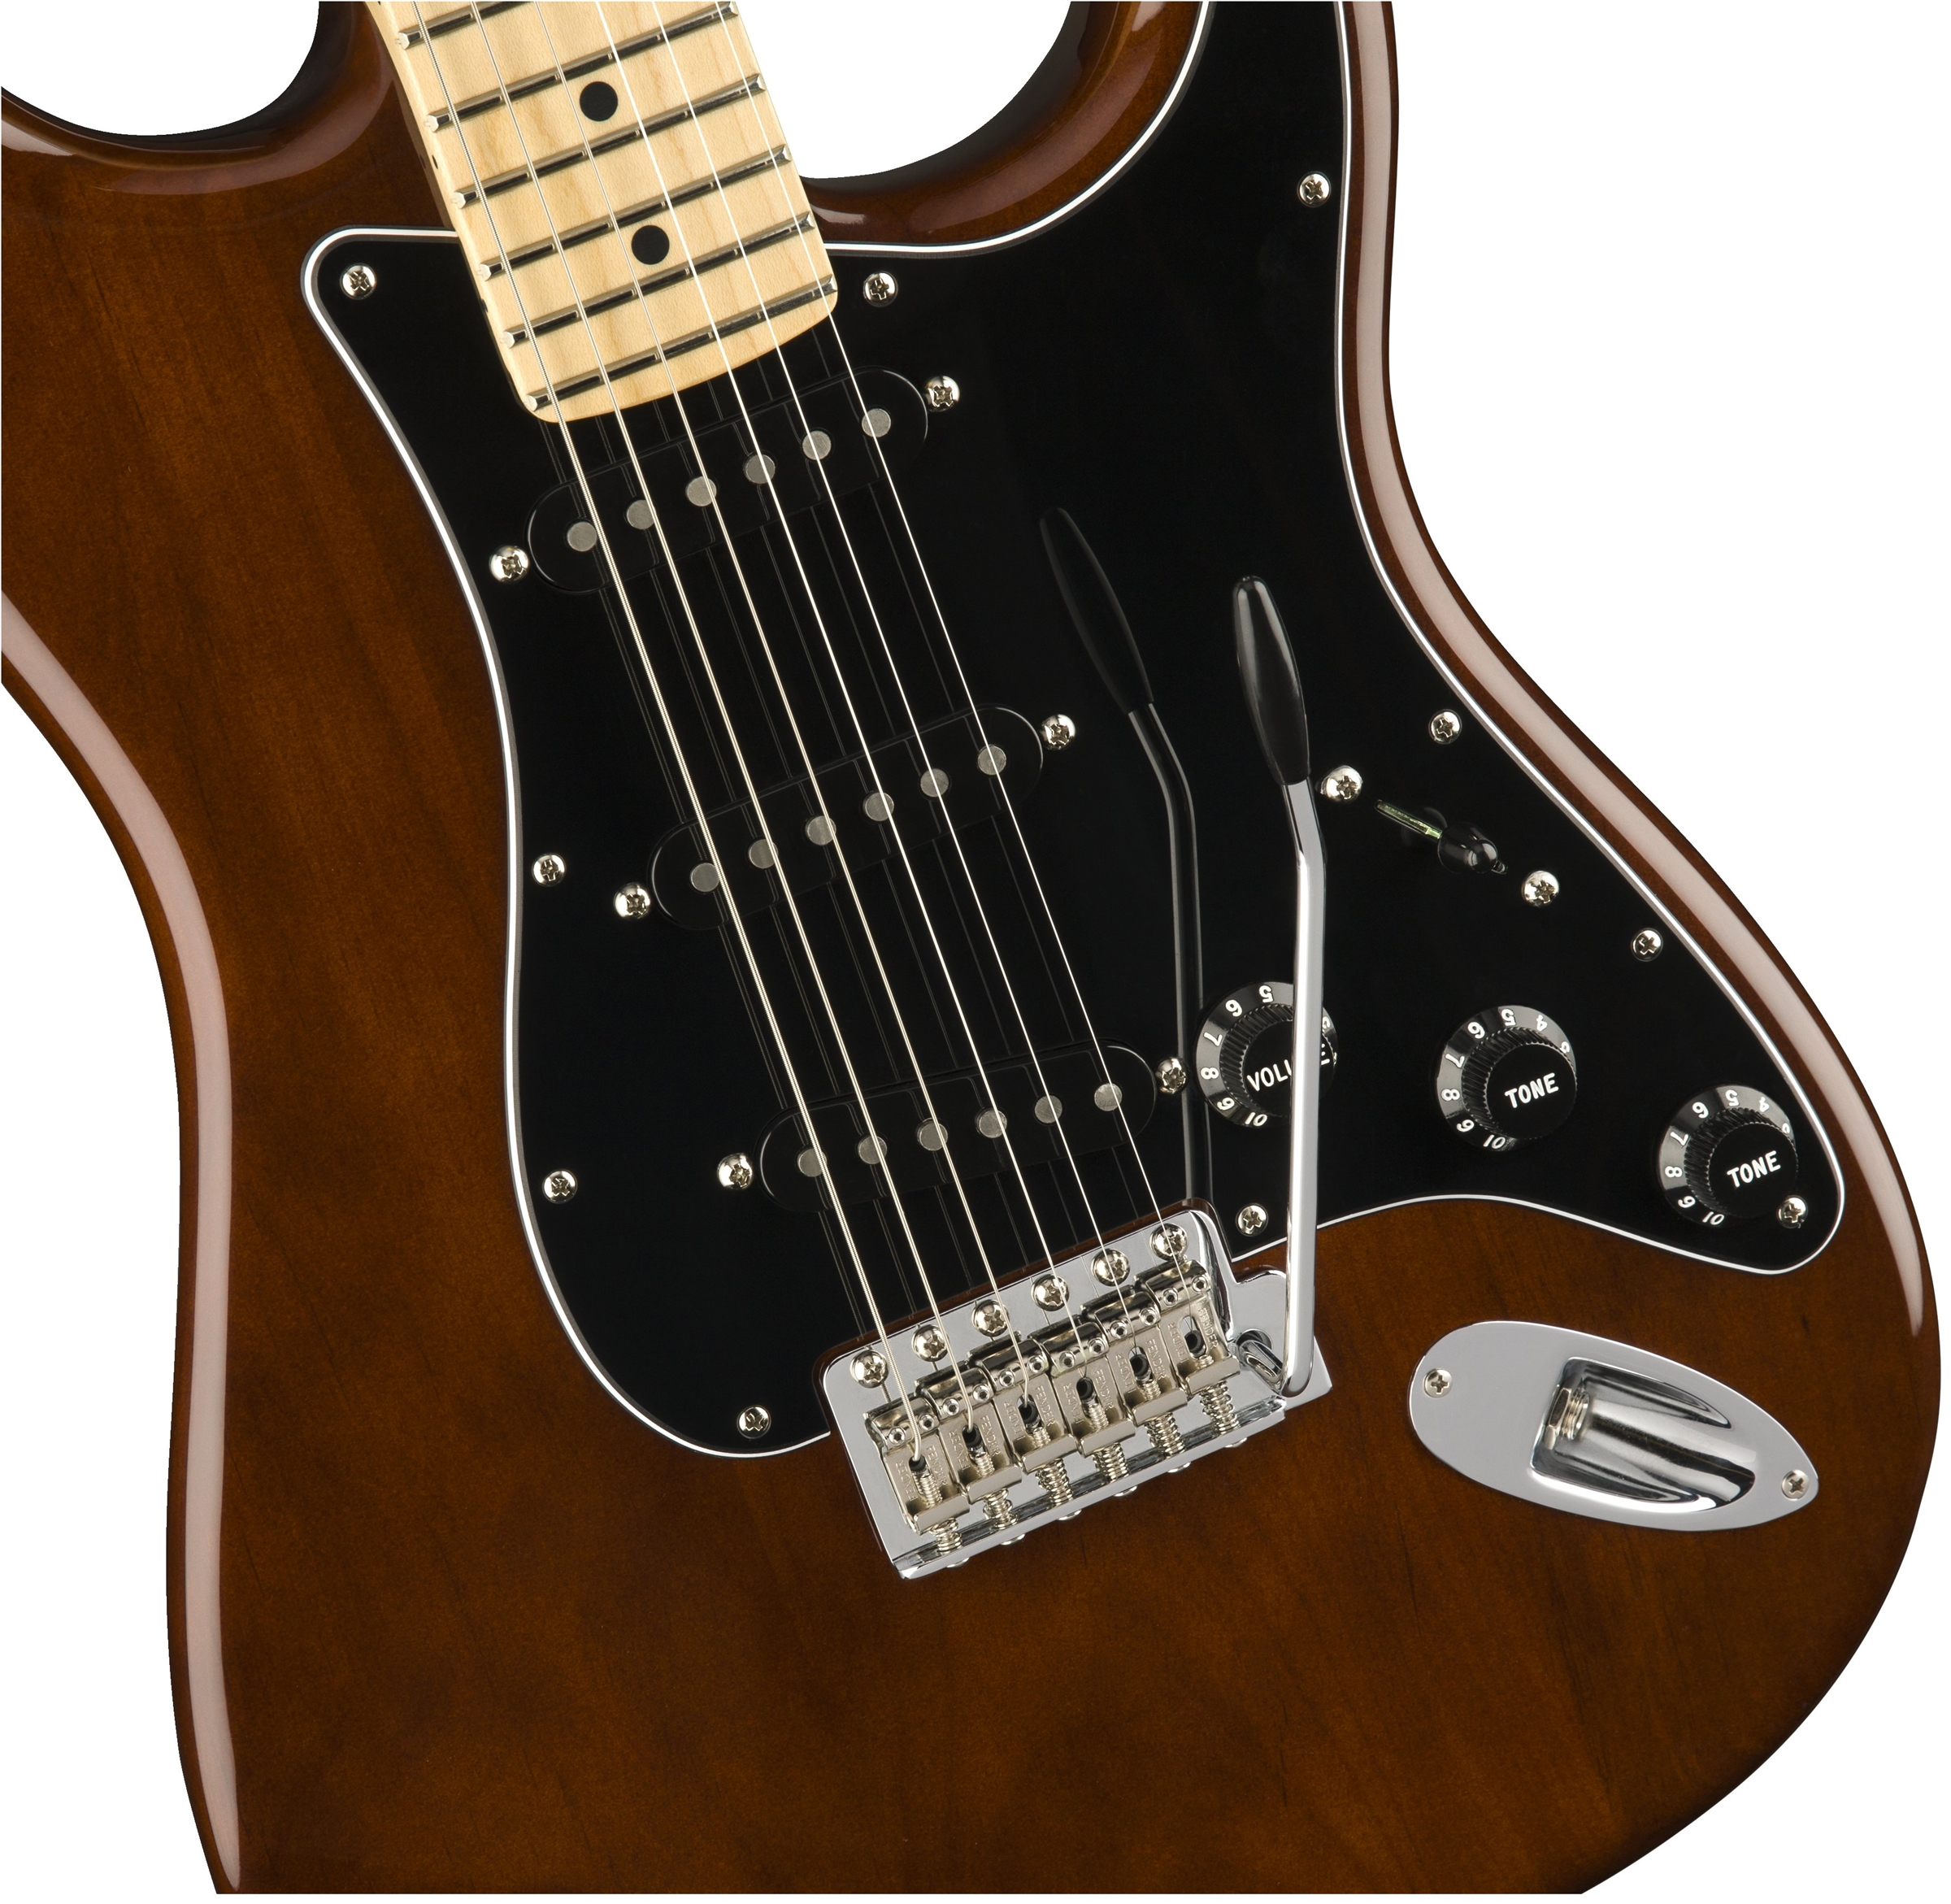 American Special Stratocaster Fender Electric Guitars